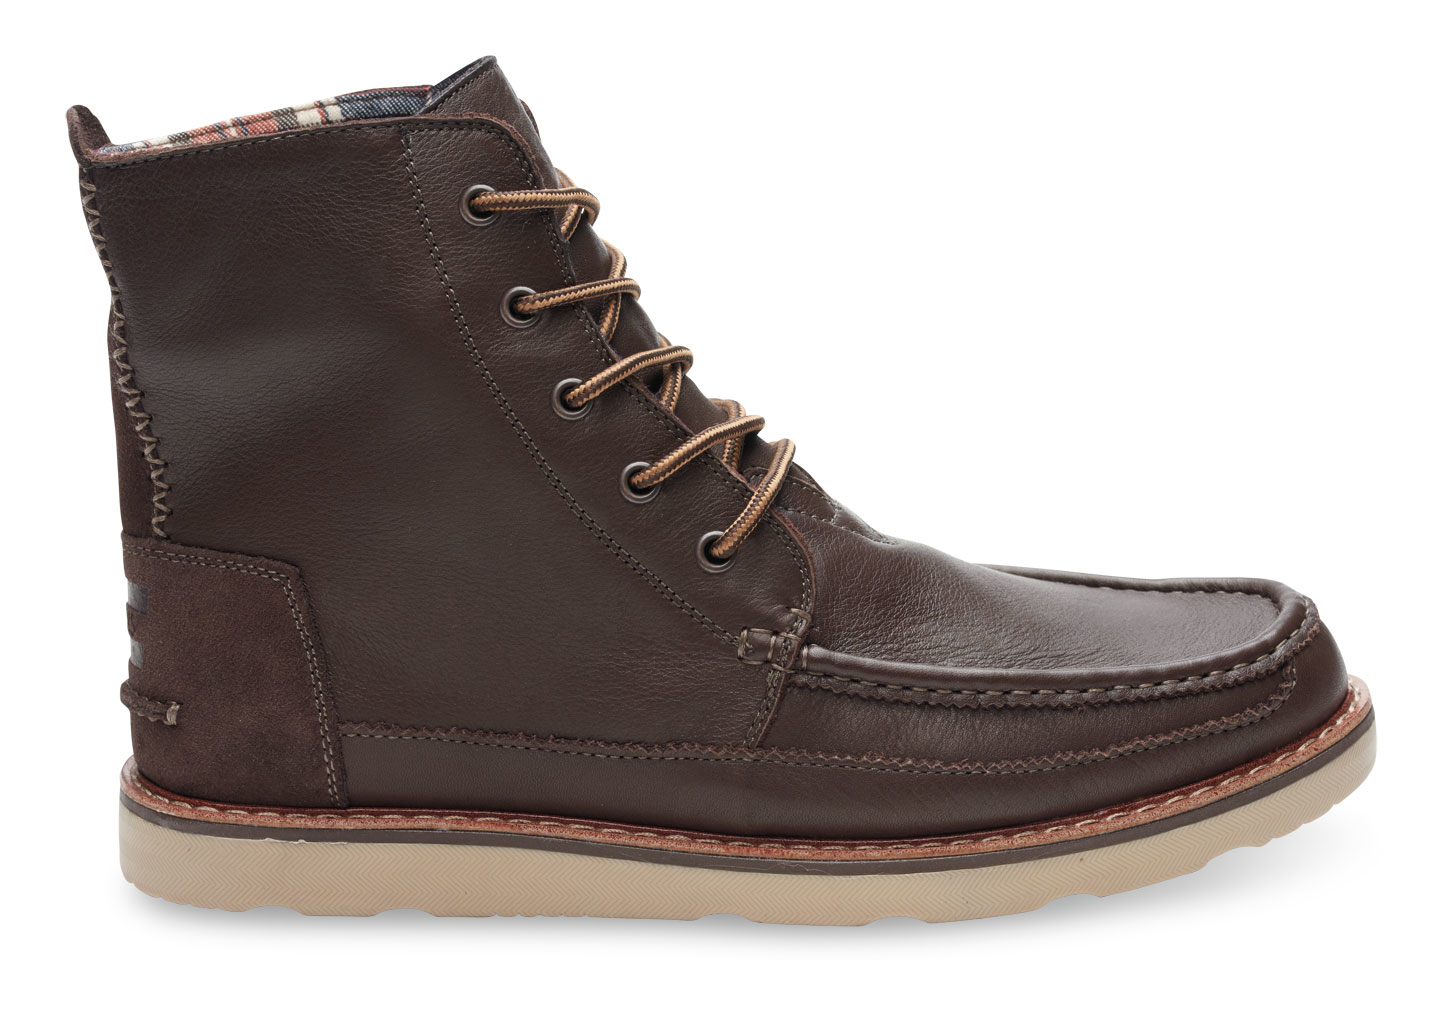 Toms Chocolate Brown Full Grain Leather Men's Searcher Boots in ...